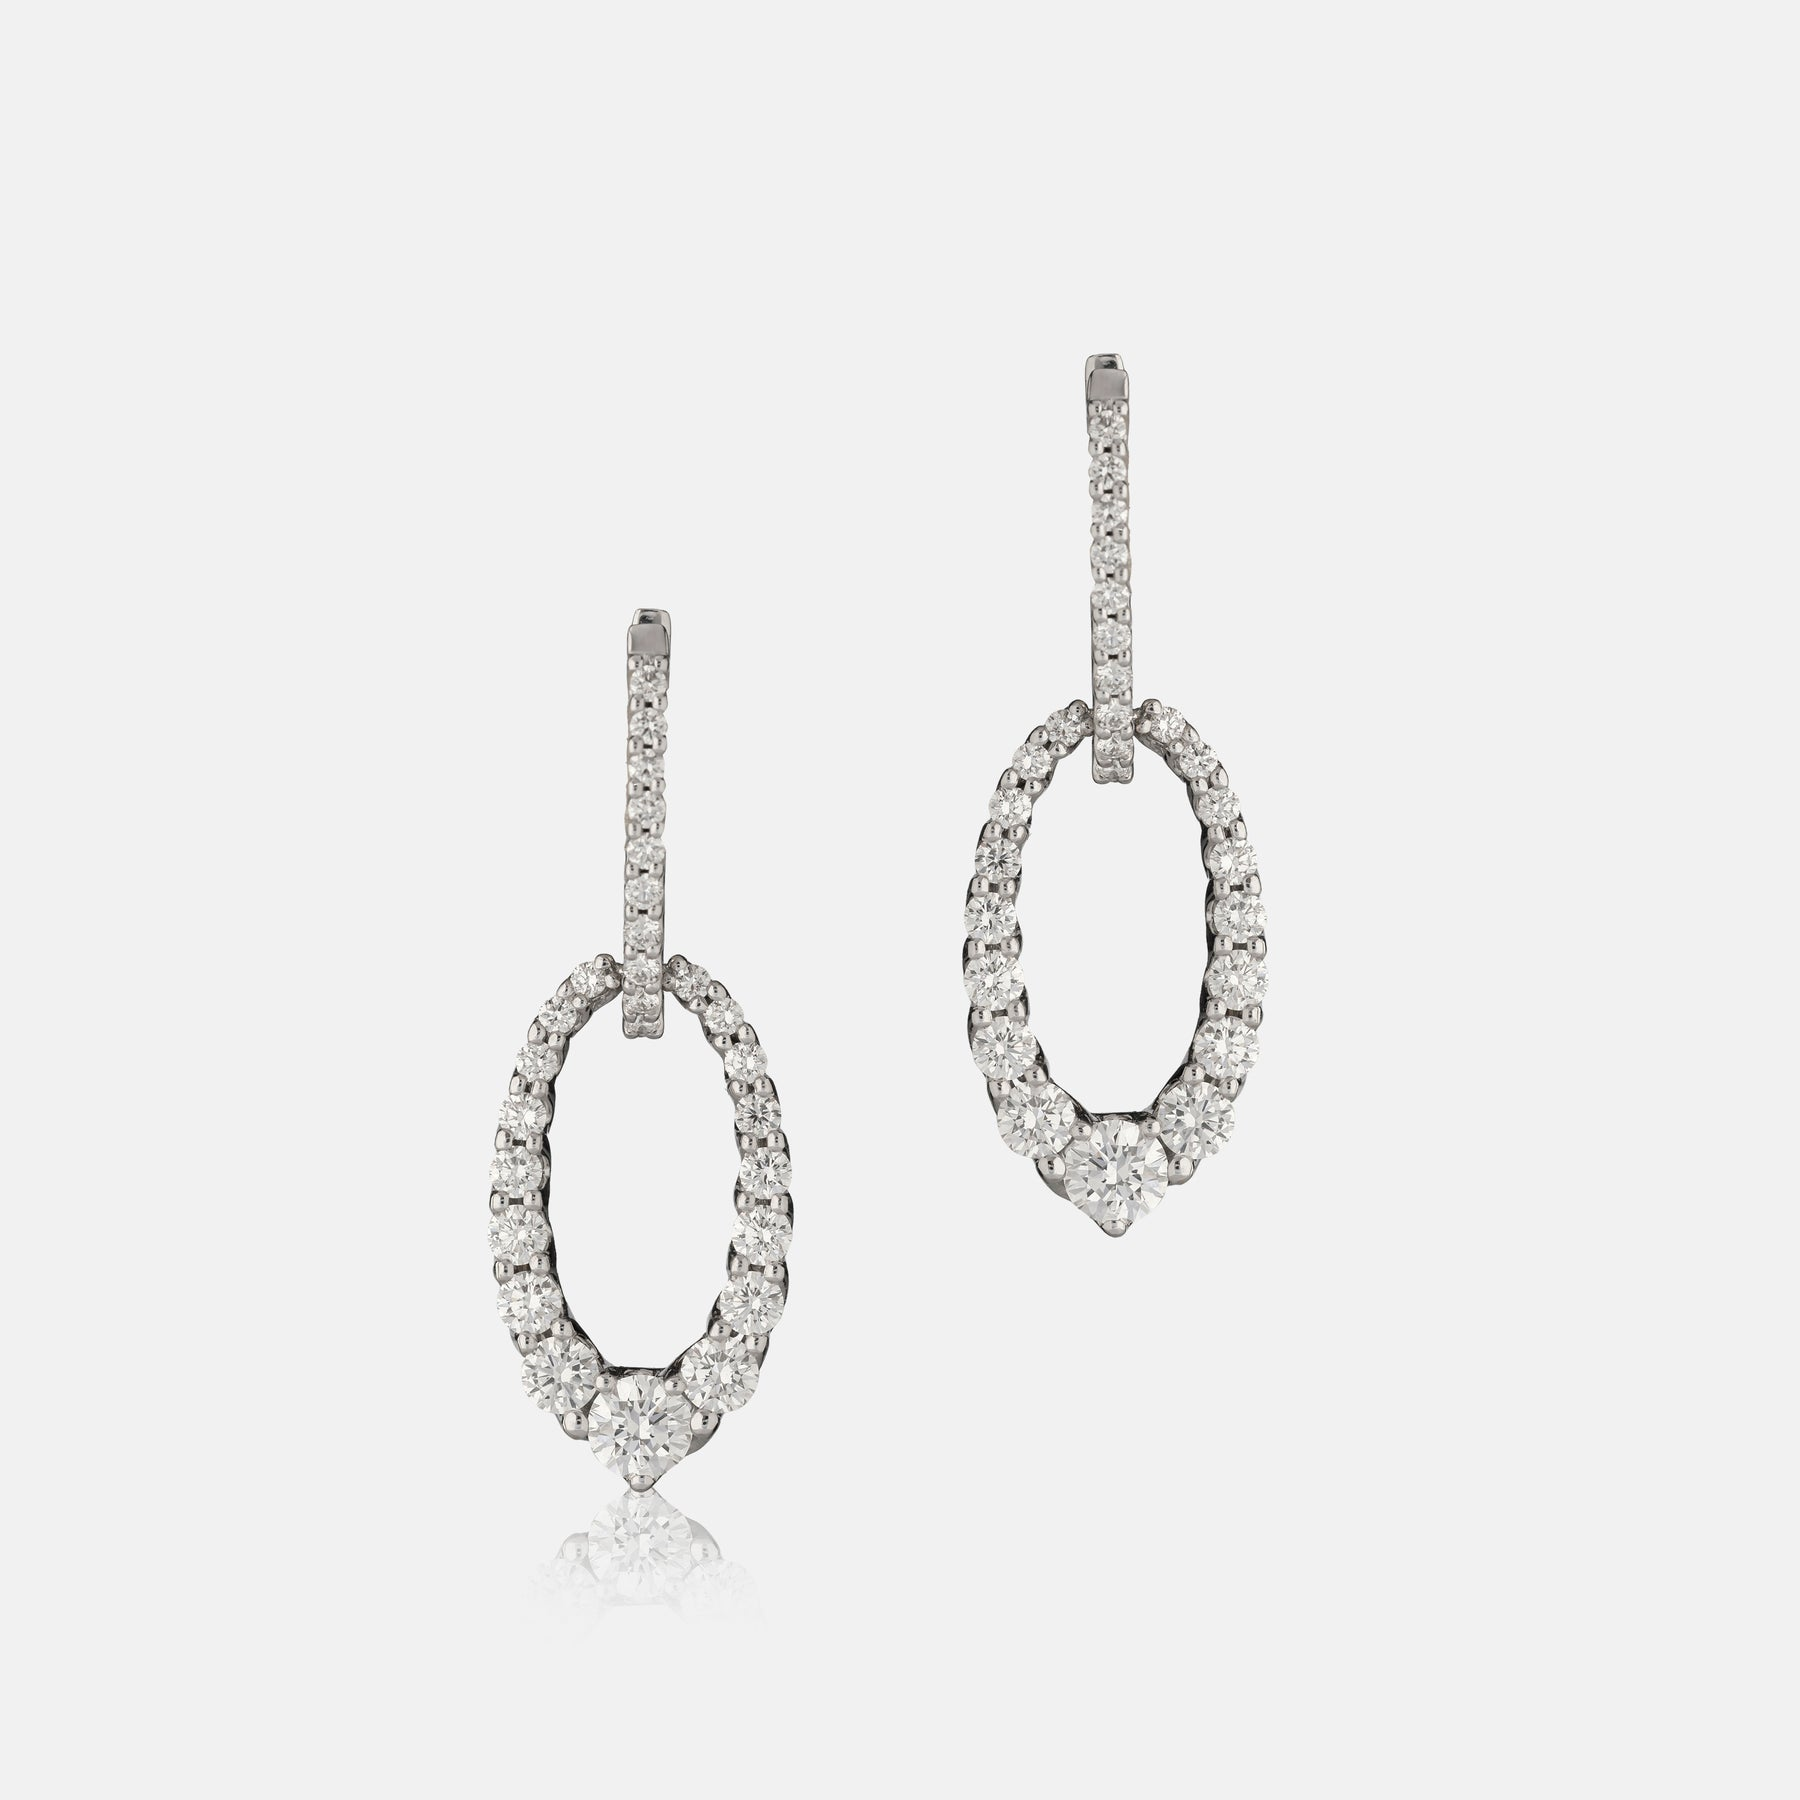 2.42ct Diamond,<br> Small Oval Drop Earrings,<br> 18ct White Gold